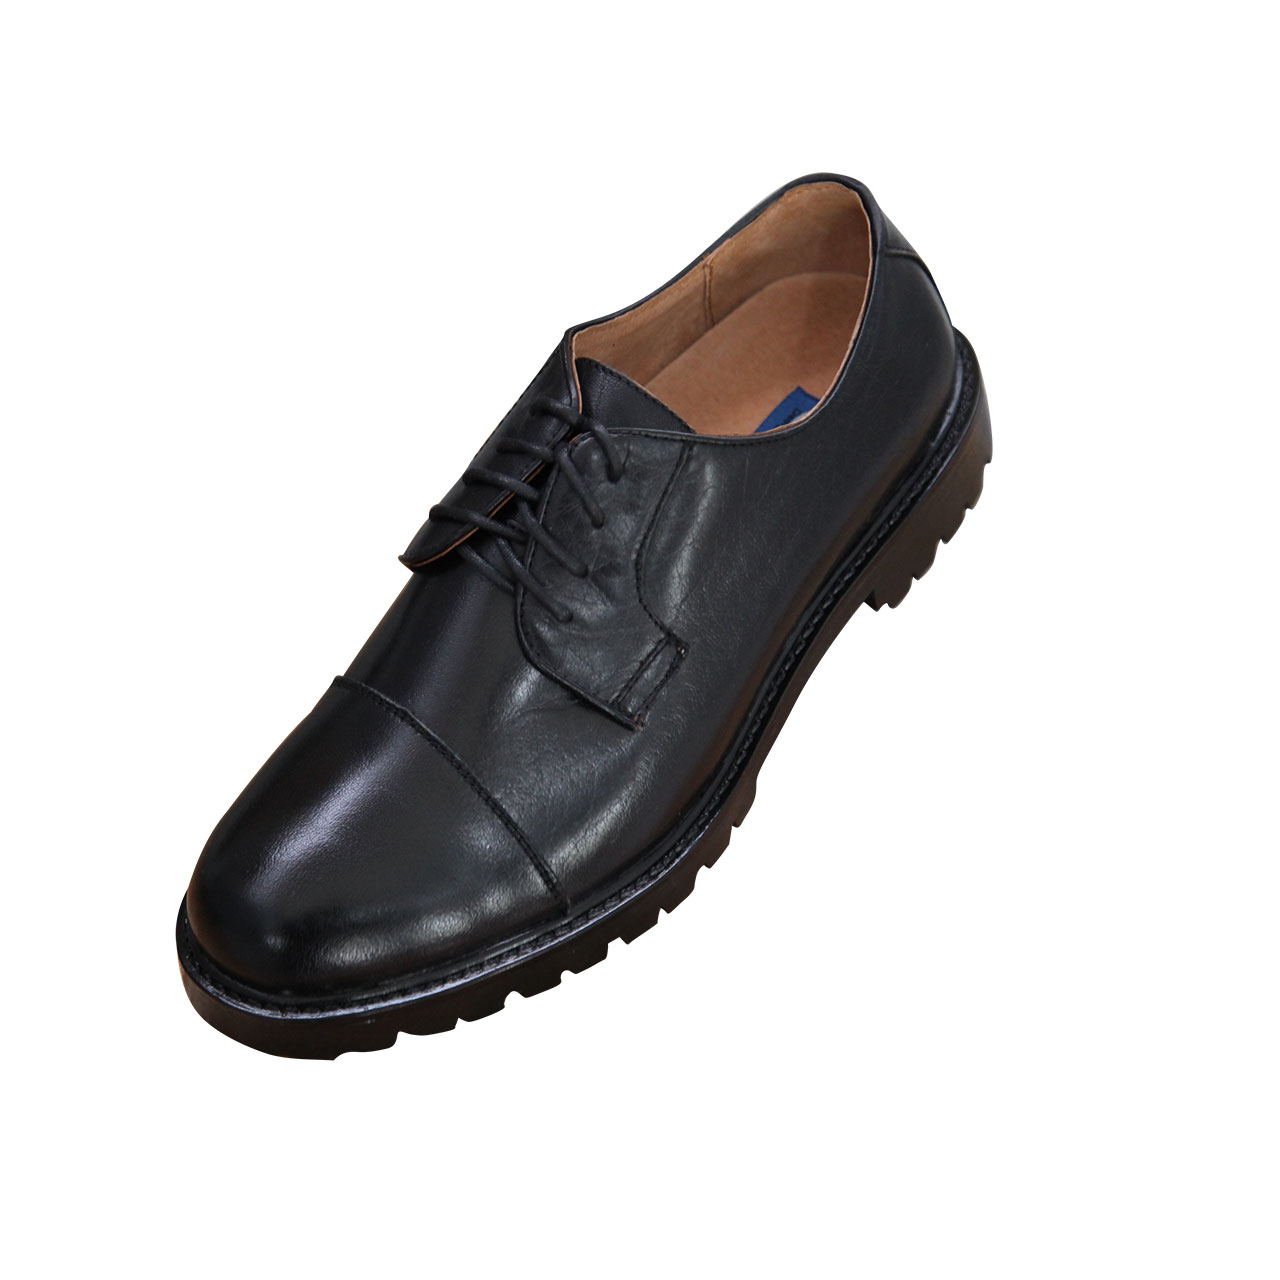 Men's Classic Oxford Plain Cap Toe Lace Up Brogue Genuine Leather Shoe - Black